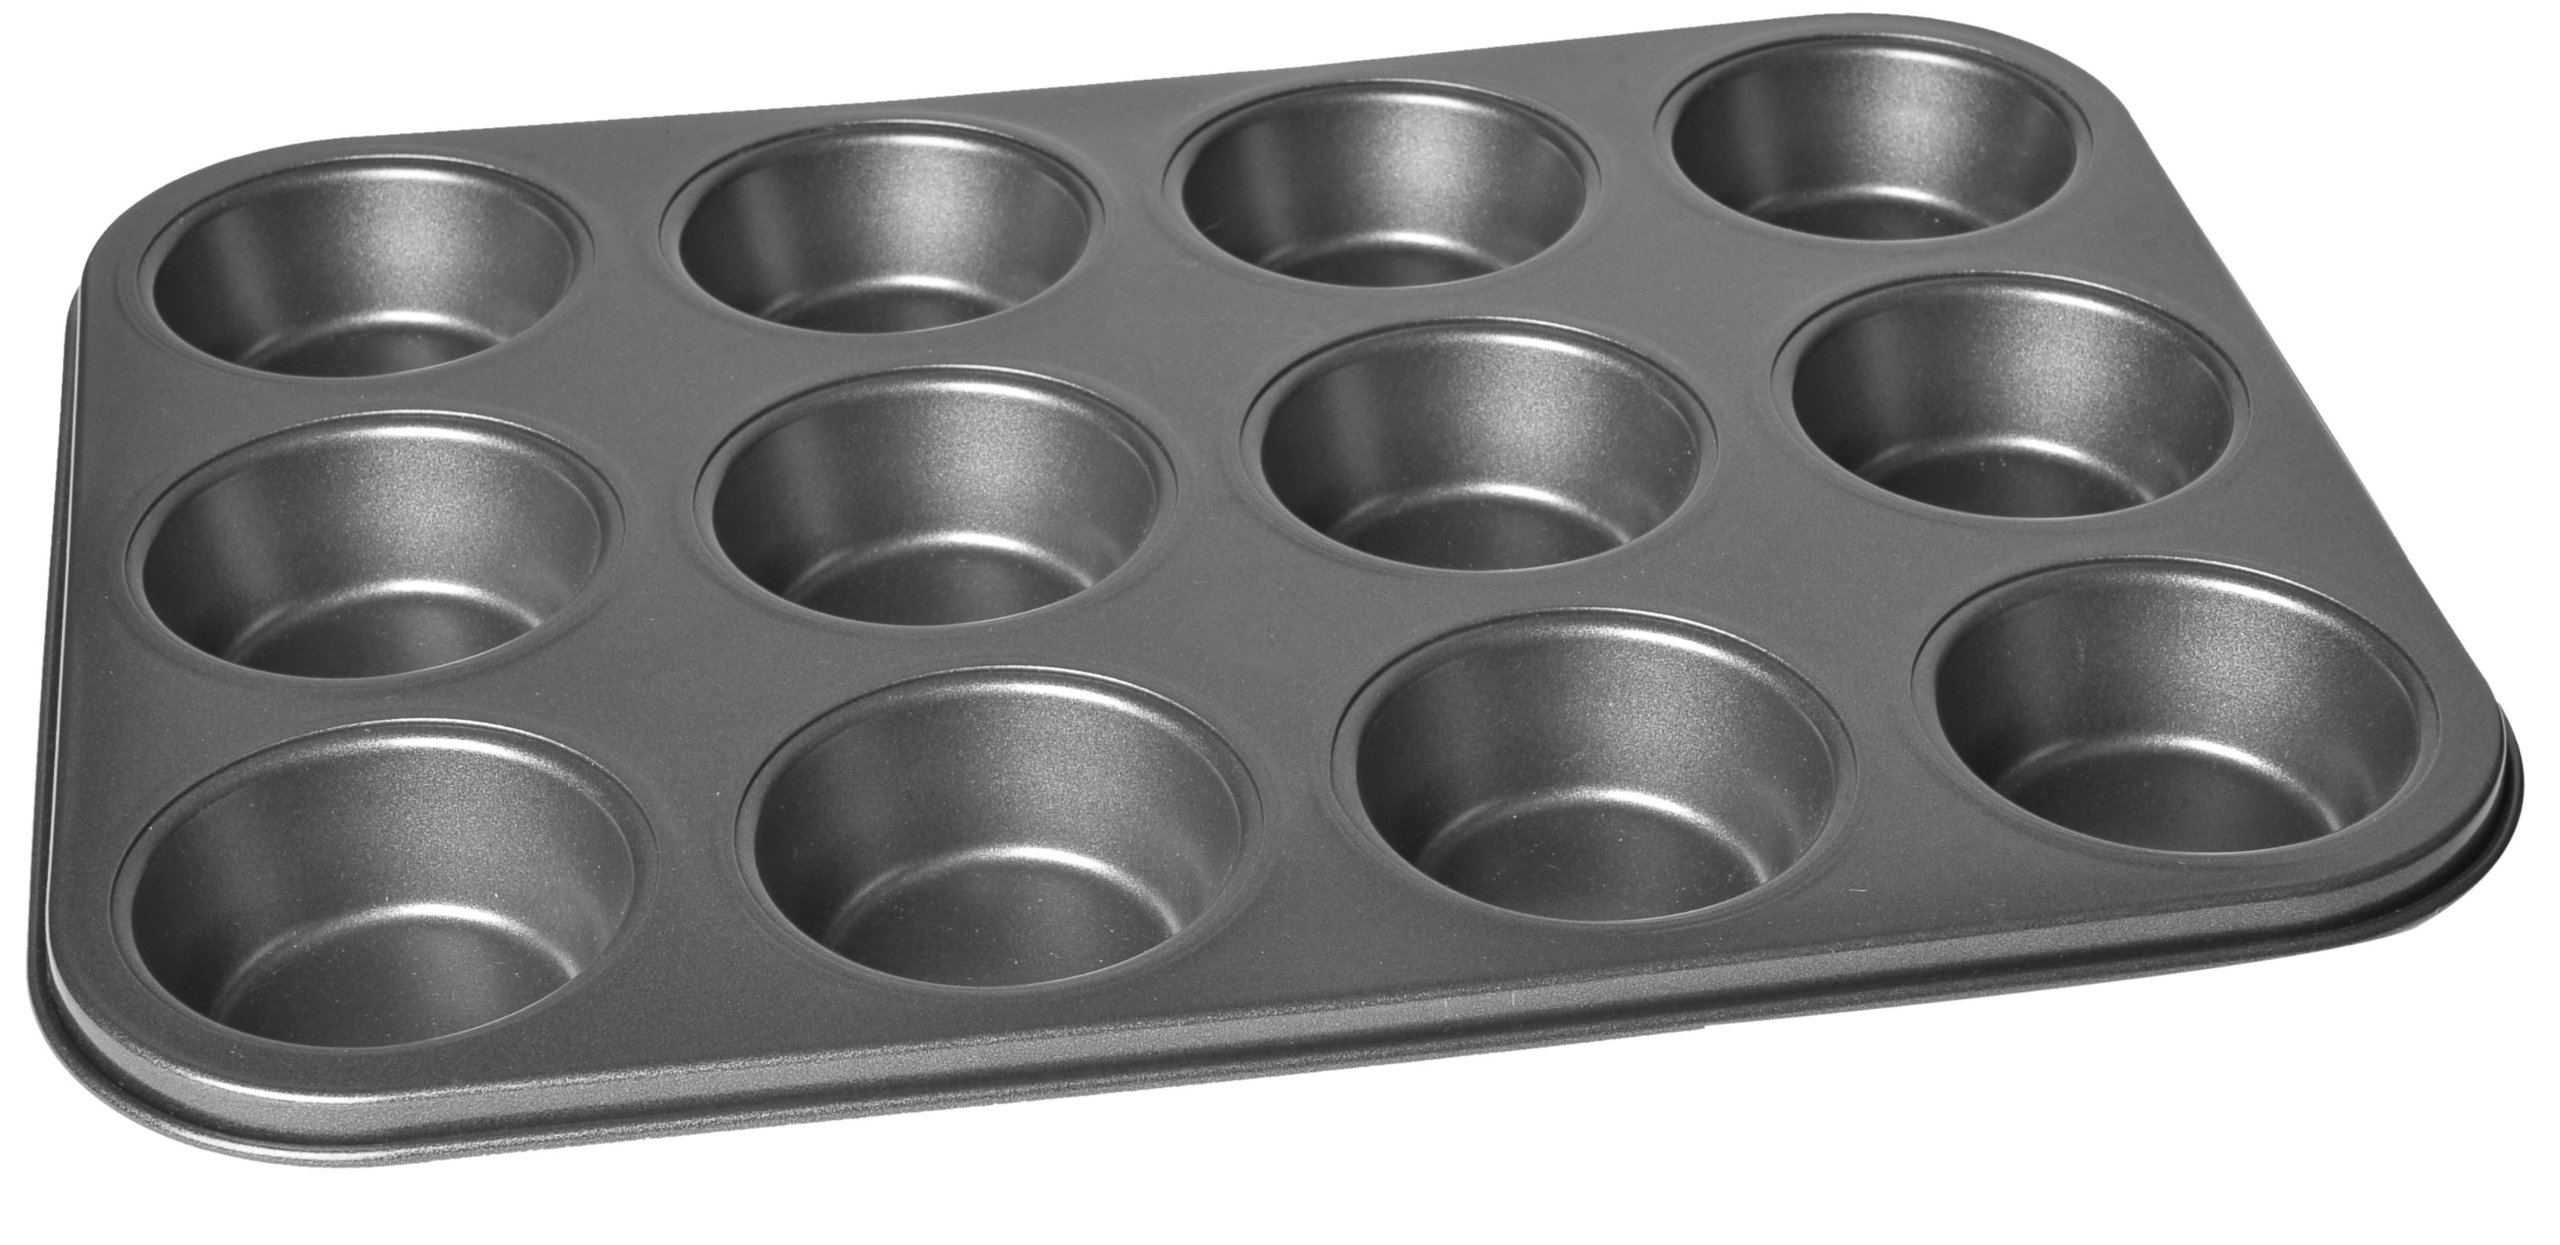 Chloe's Kitchen 201-109 Muffin Pan, 12-Cavity, Non-Stick by MDC Housewares Inc.